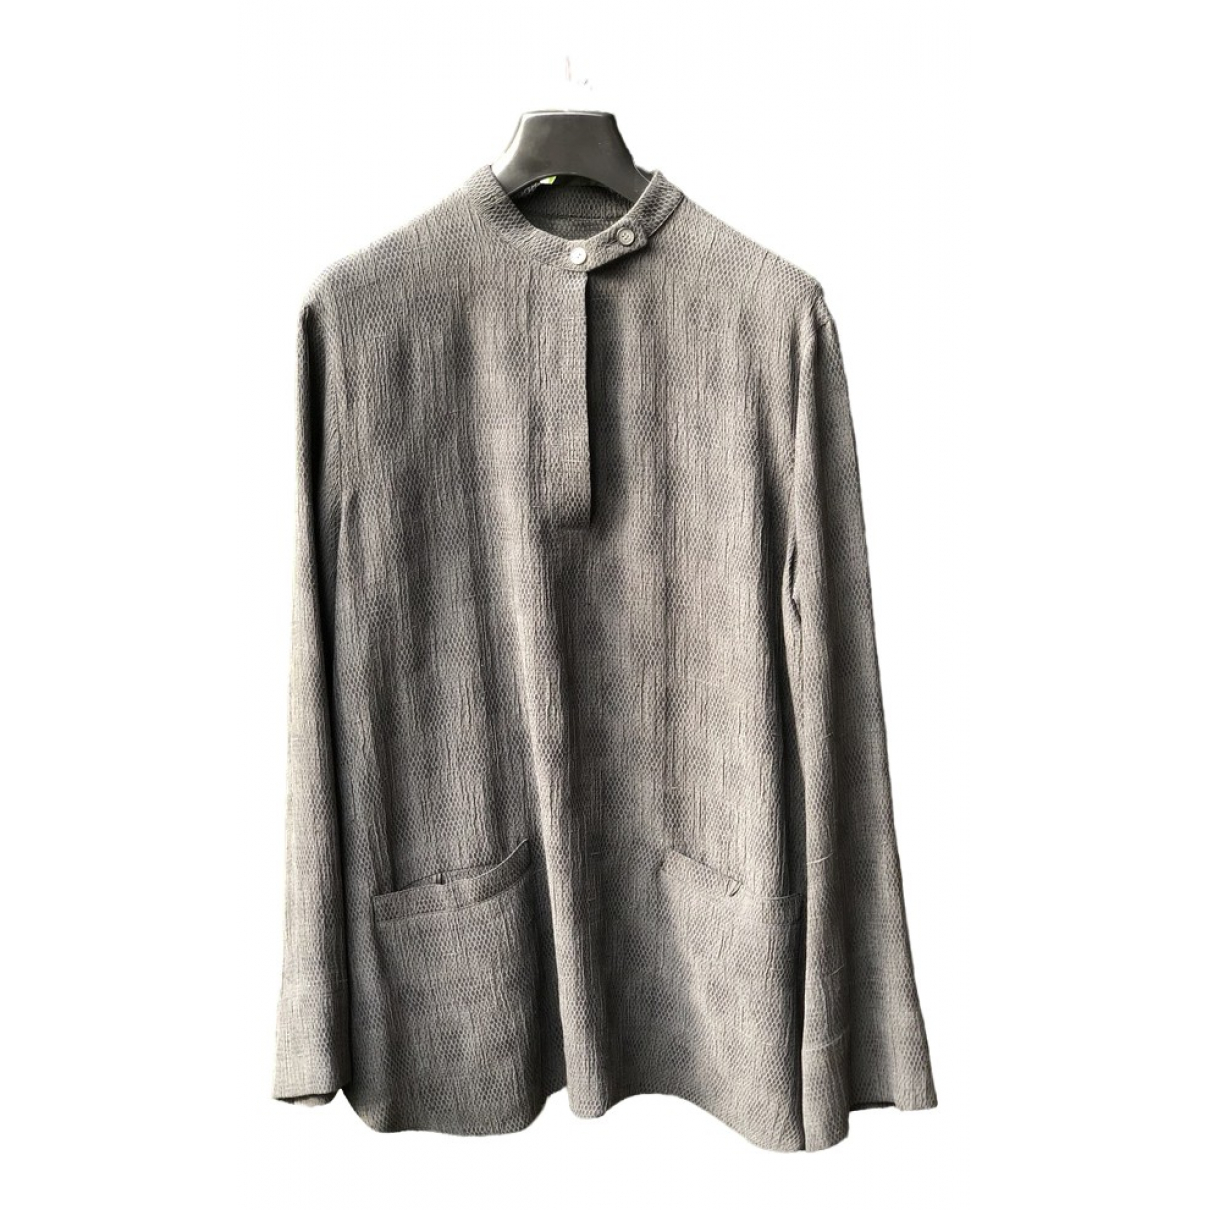 Giorgio Armani \N Grey Silk  top for Women 38 IT